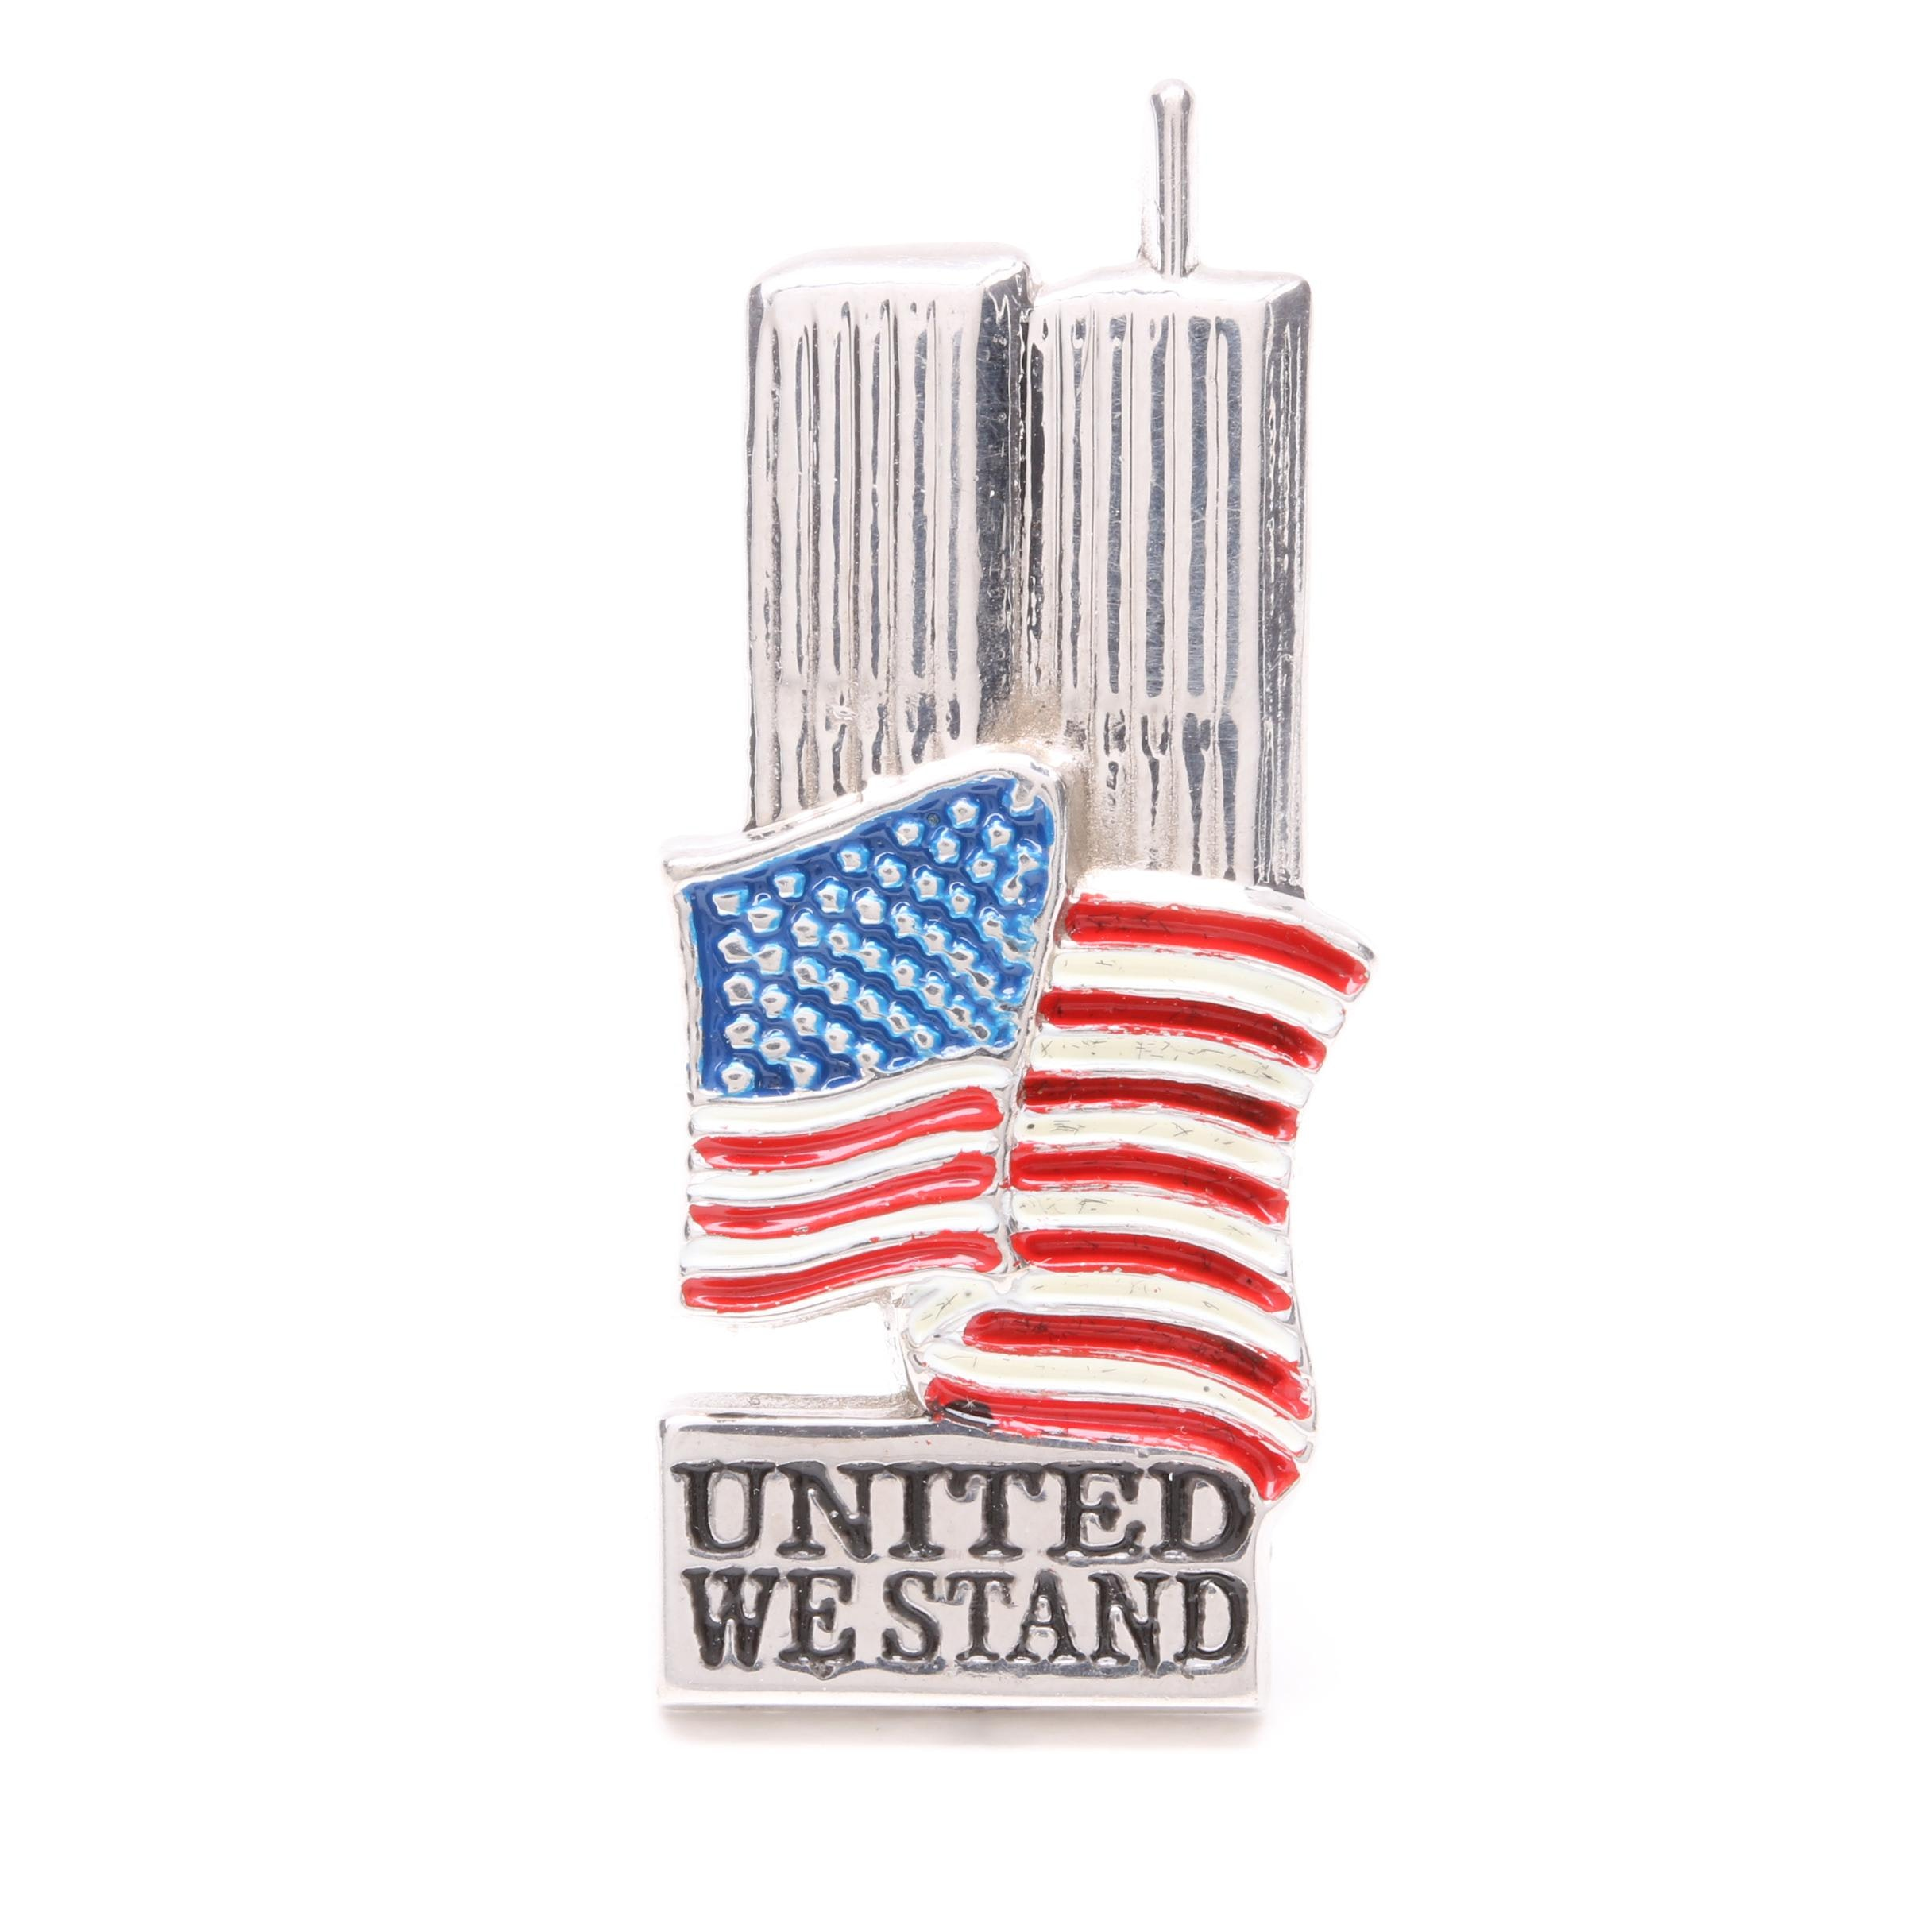 14K White Gold Enameled United We Stand World Trade Center Brooch